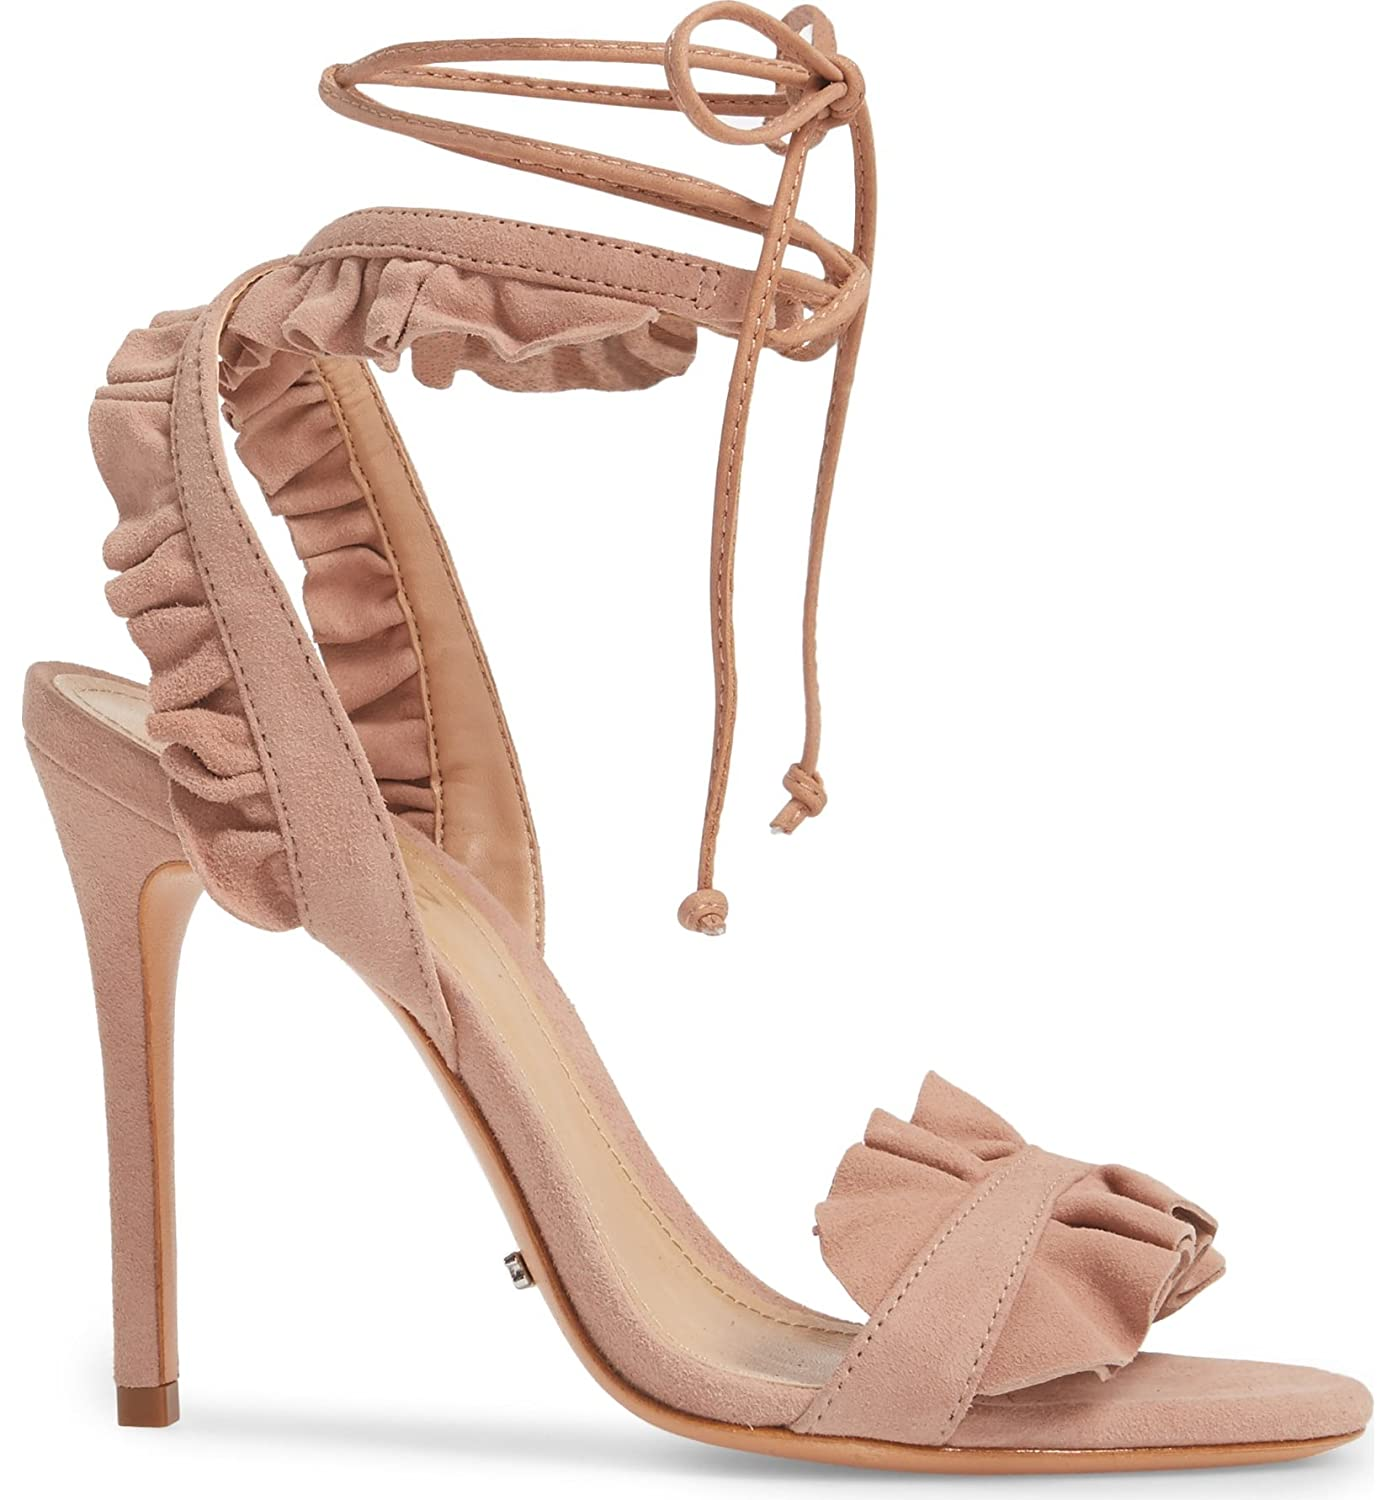 430b6a50598d4 SCHUTZ Irem Peach Blush Suede Tie up Ruffle High Heel Single Sole ...